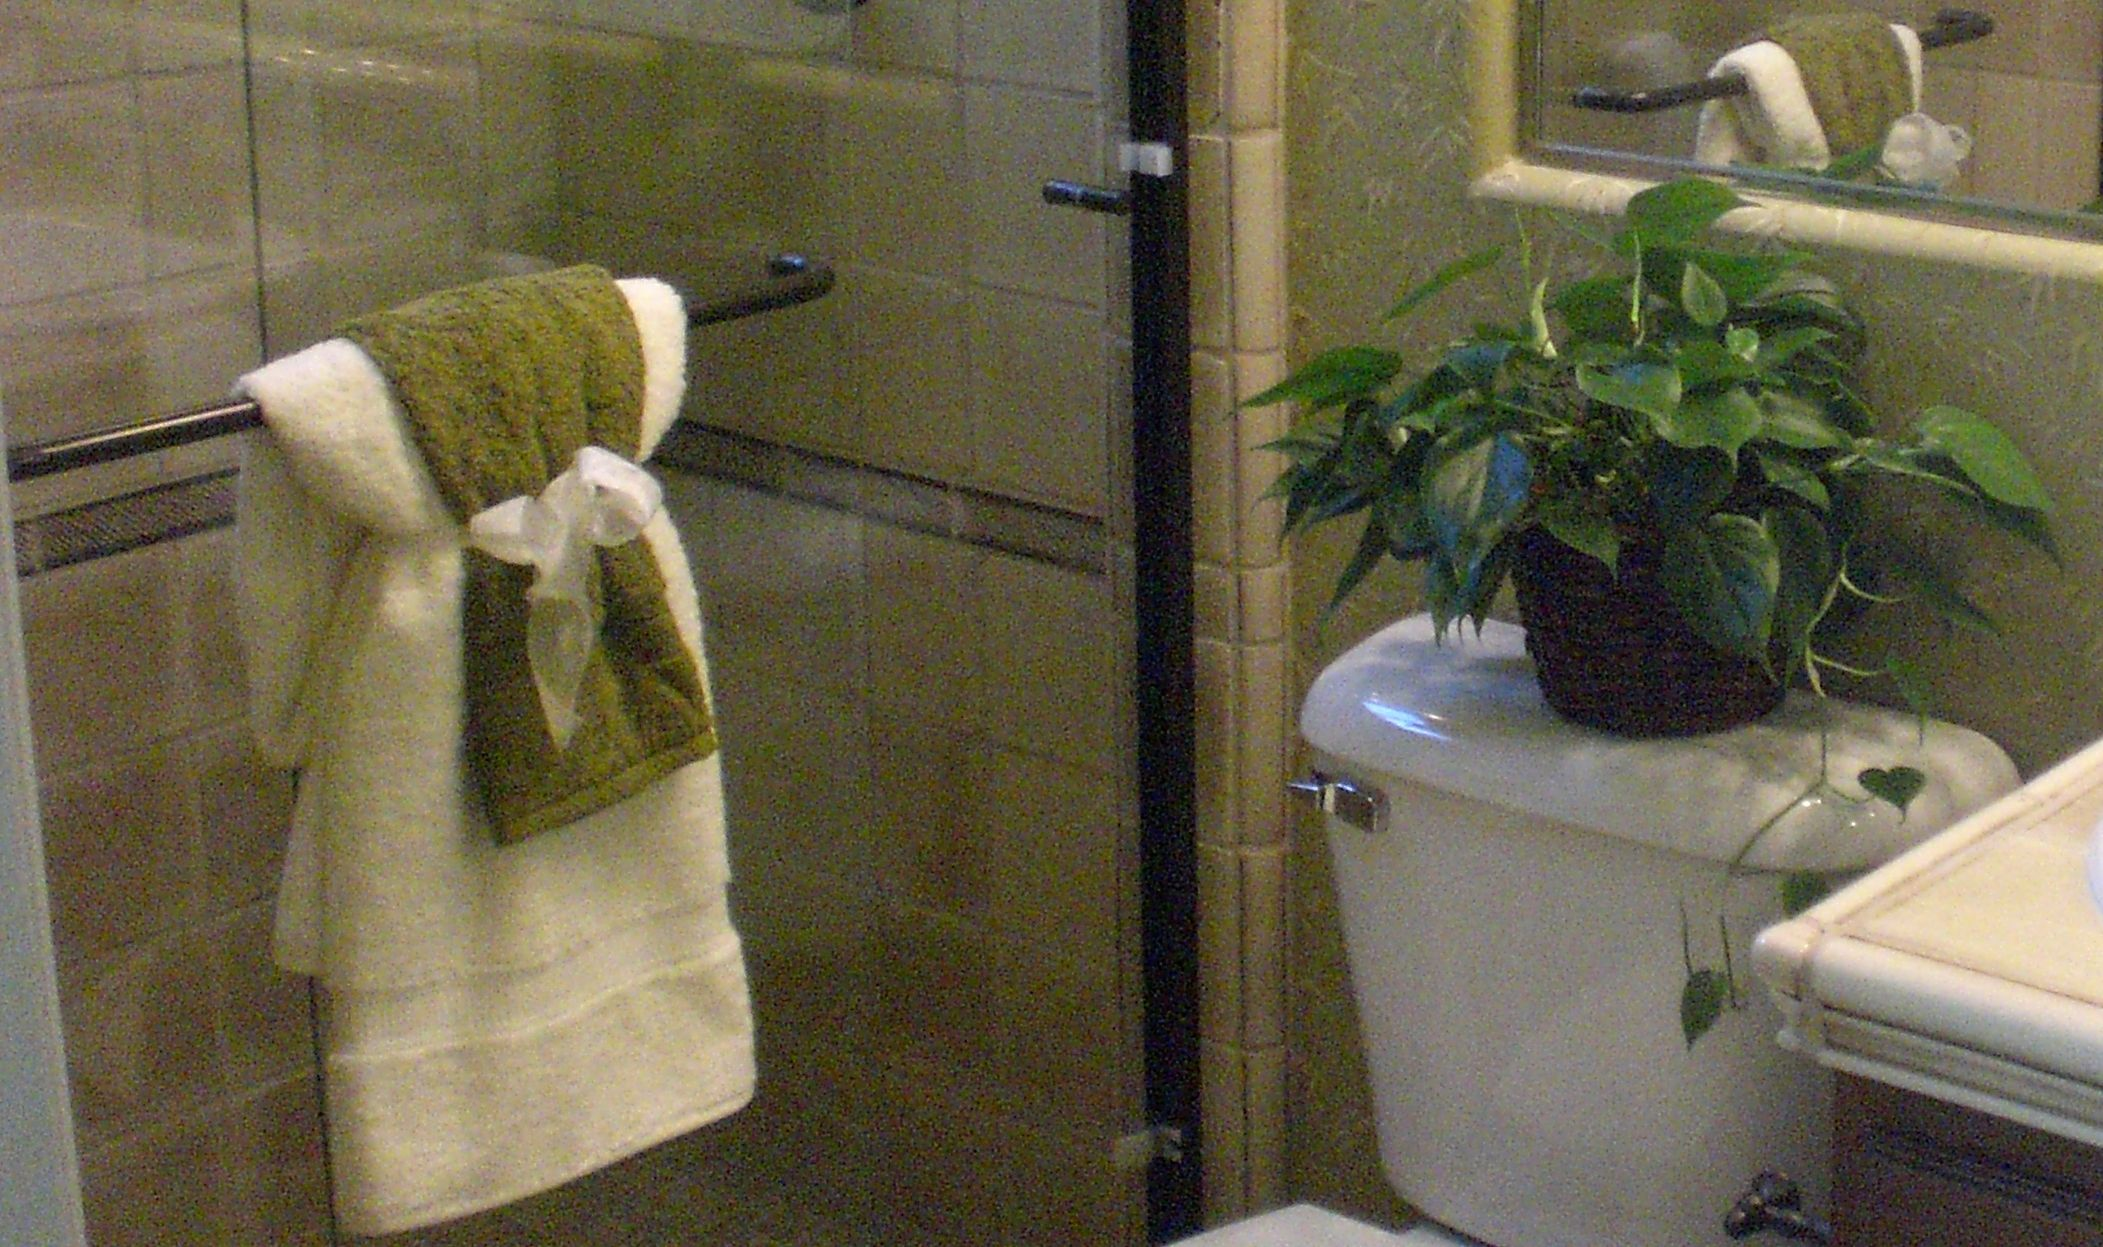 Towel Decorations Everyday Items Towels And Bathroom - Towel display racks for small bathroom ideas